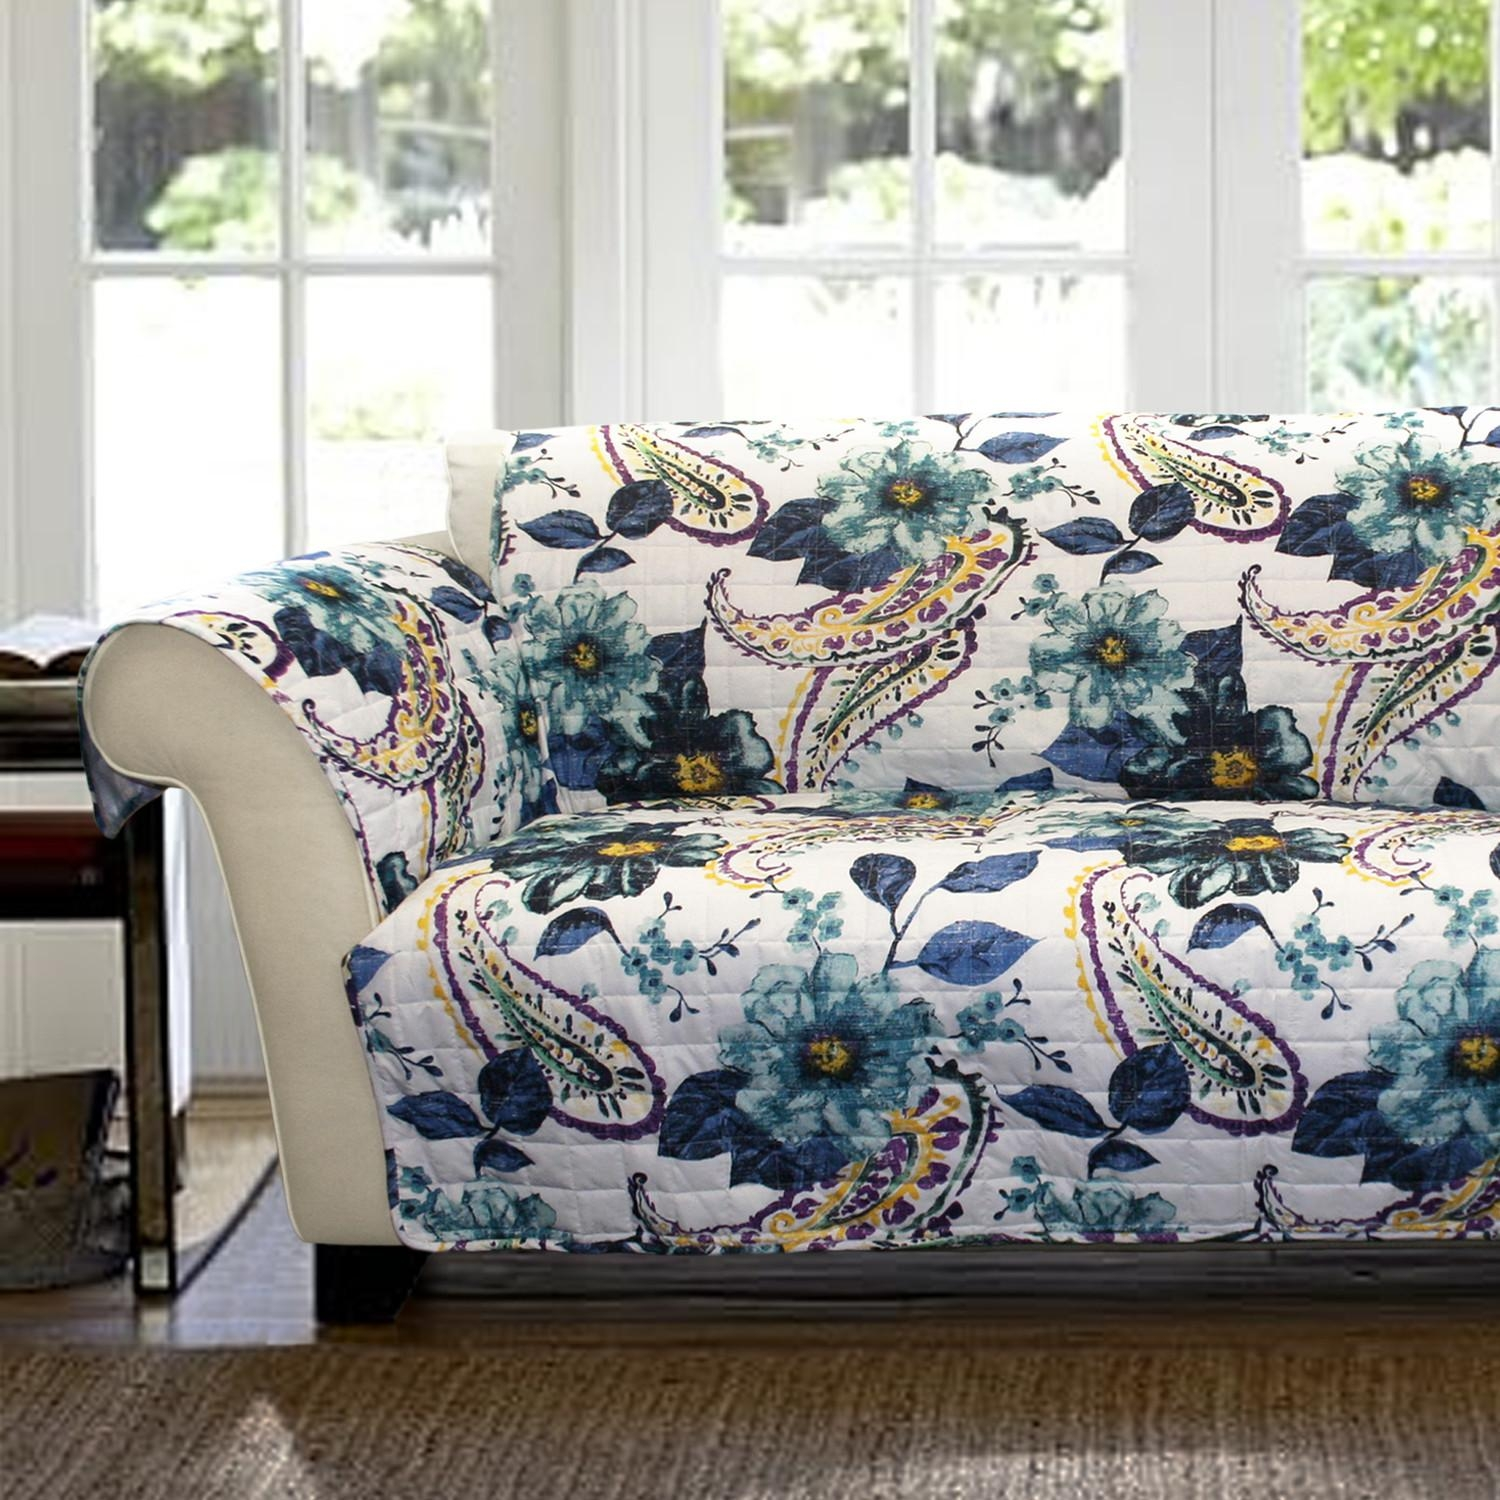 Best Modest Floral Sofas And Chairs #1658 Throughout Floral Sofas And Chairs (Image 2 of 20)